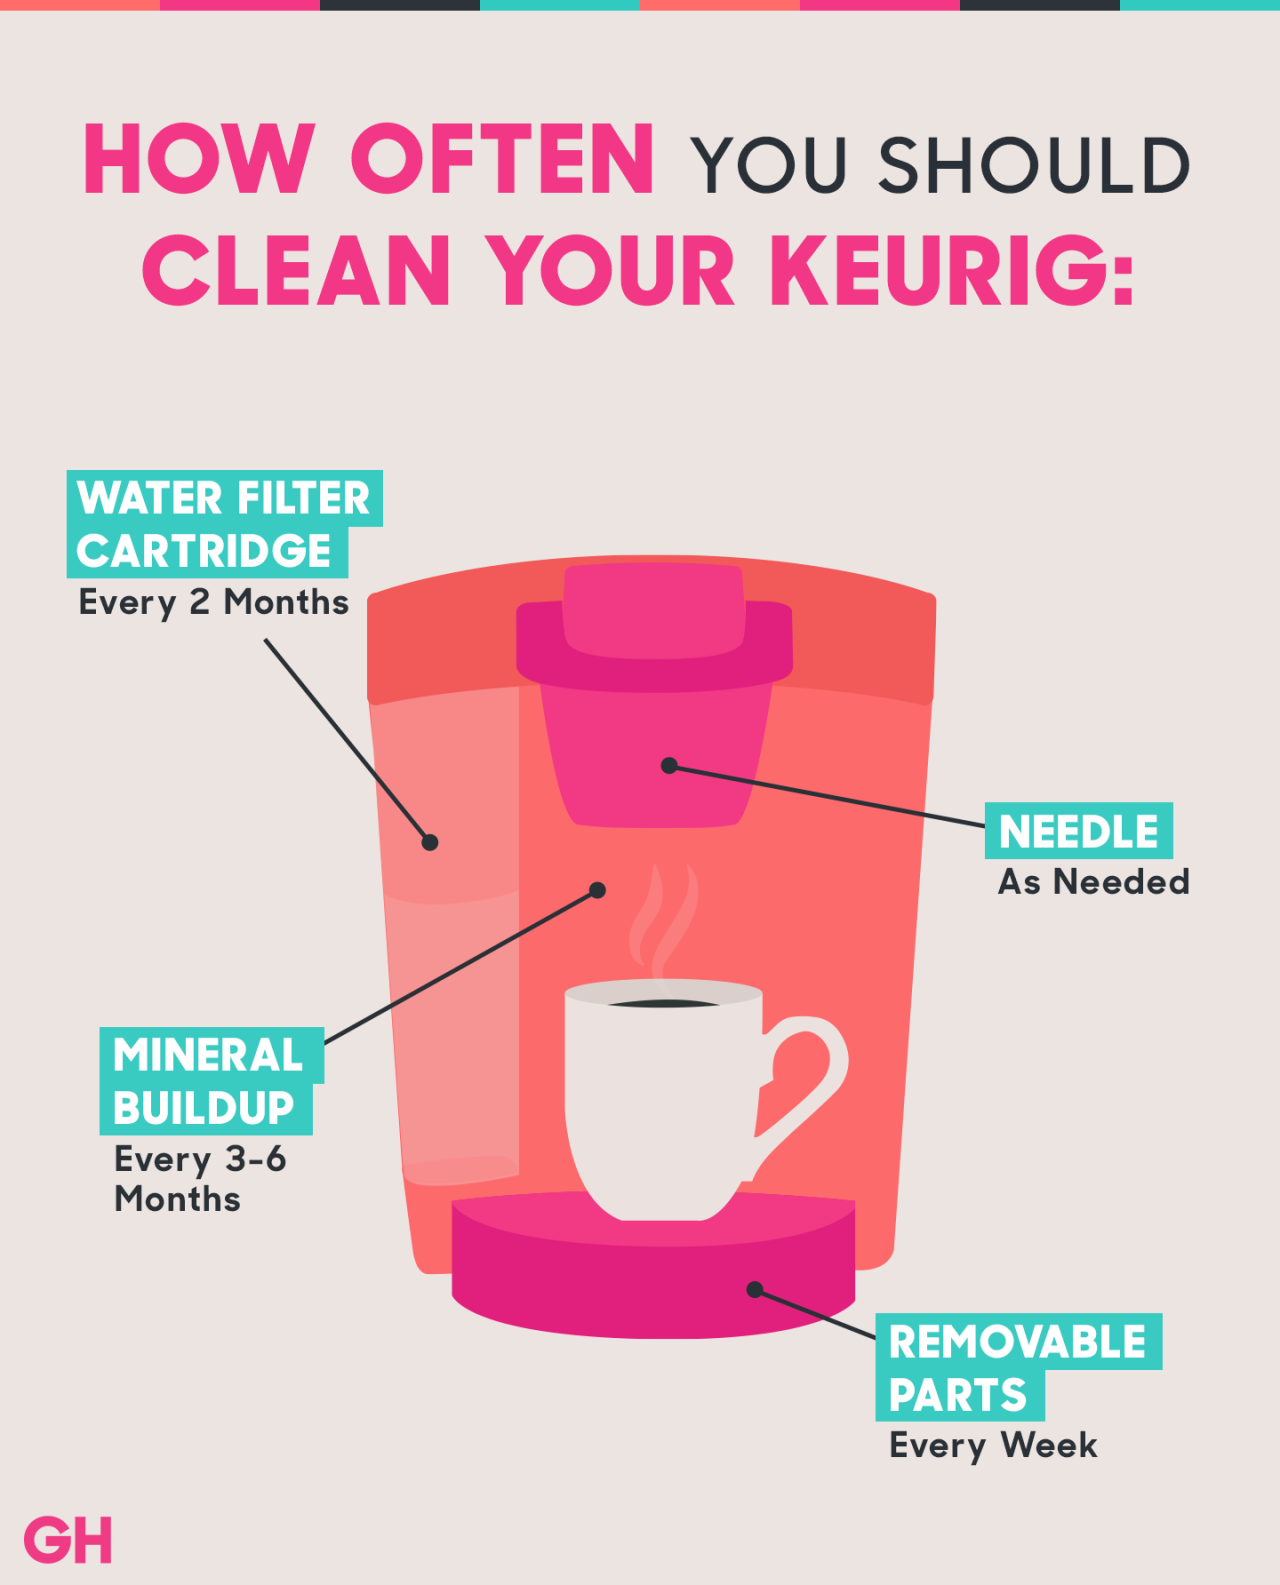 Yes, You Have to Descale Your Keurig Coffee Maker Every